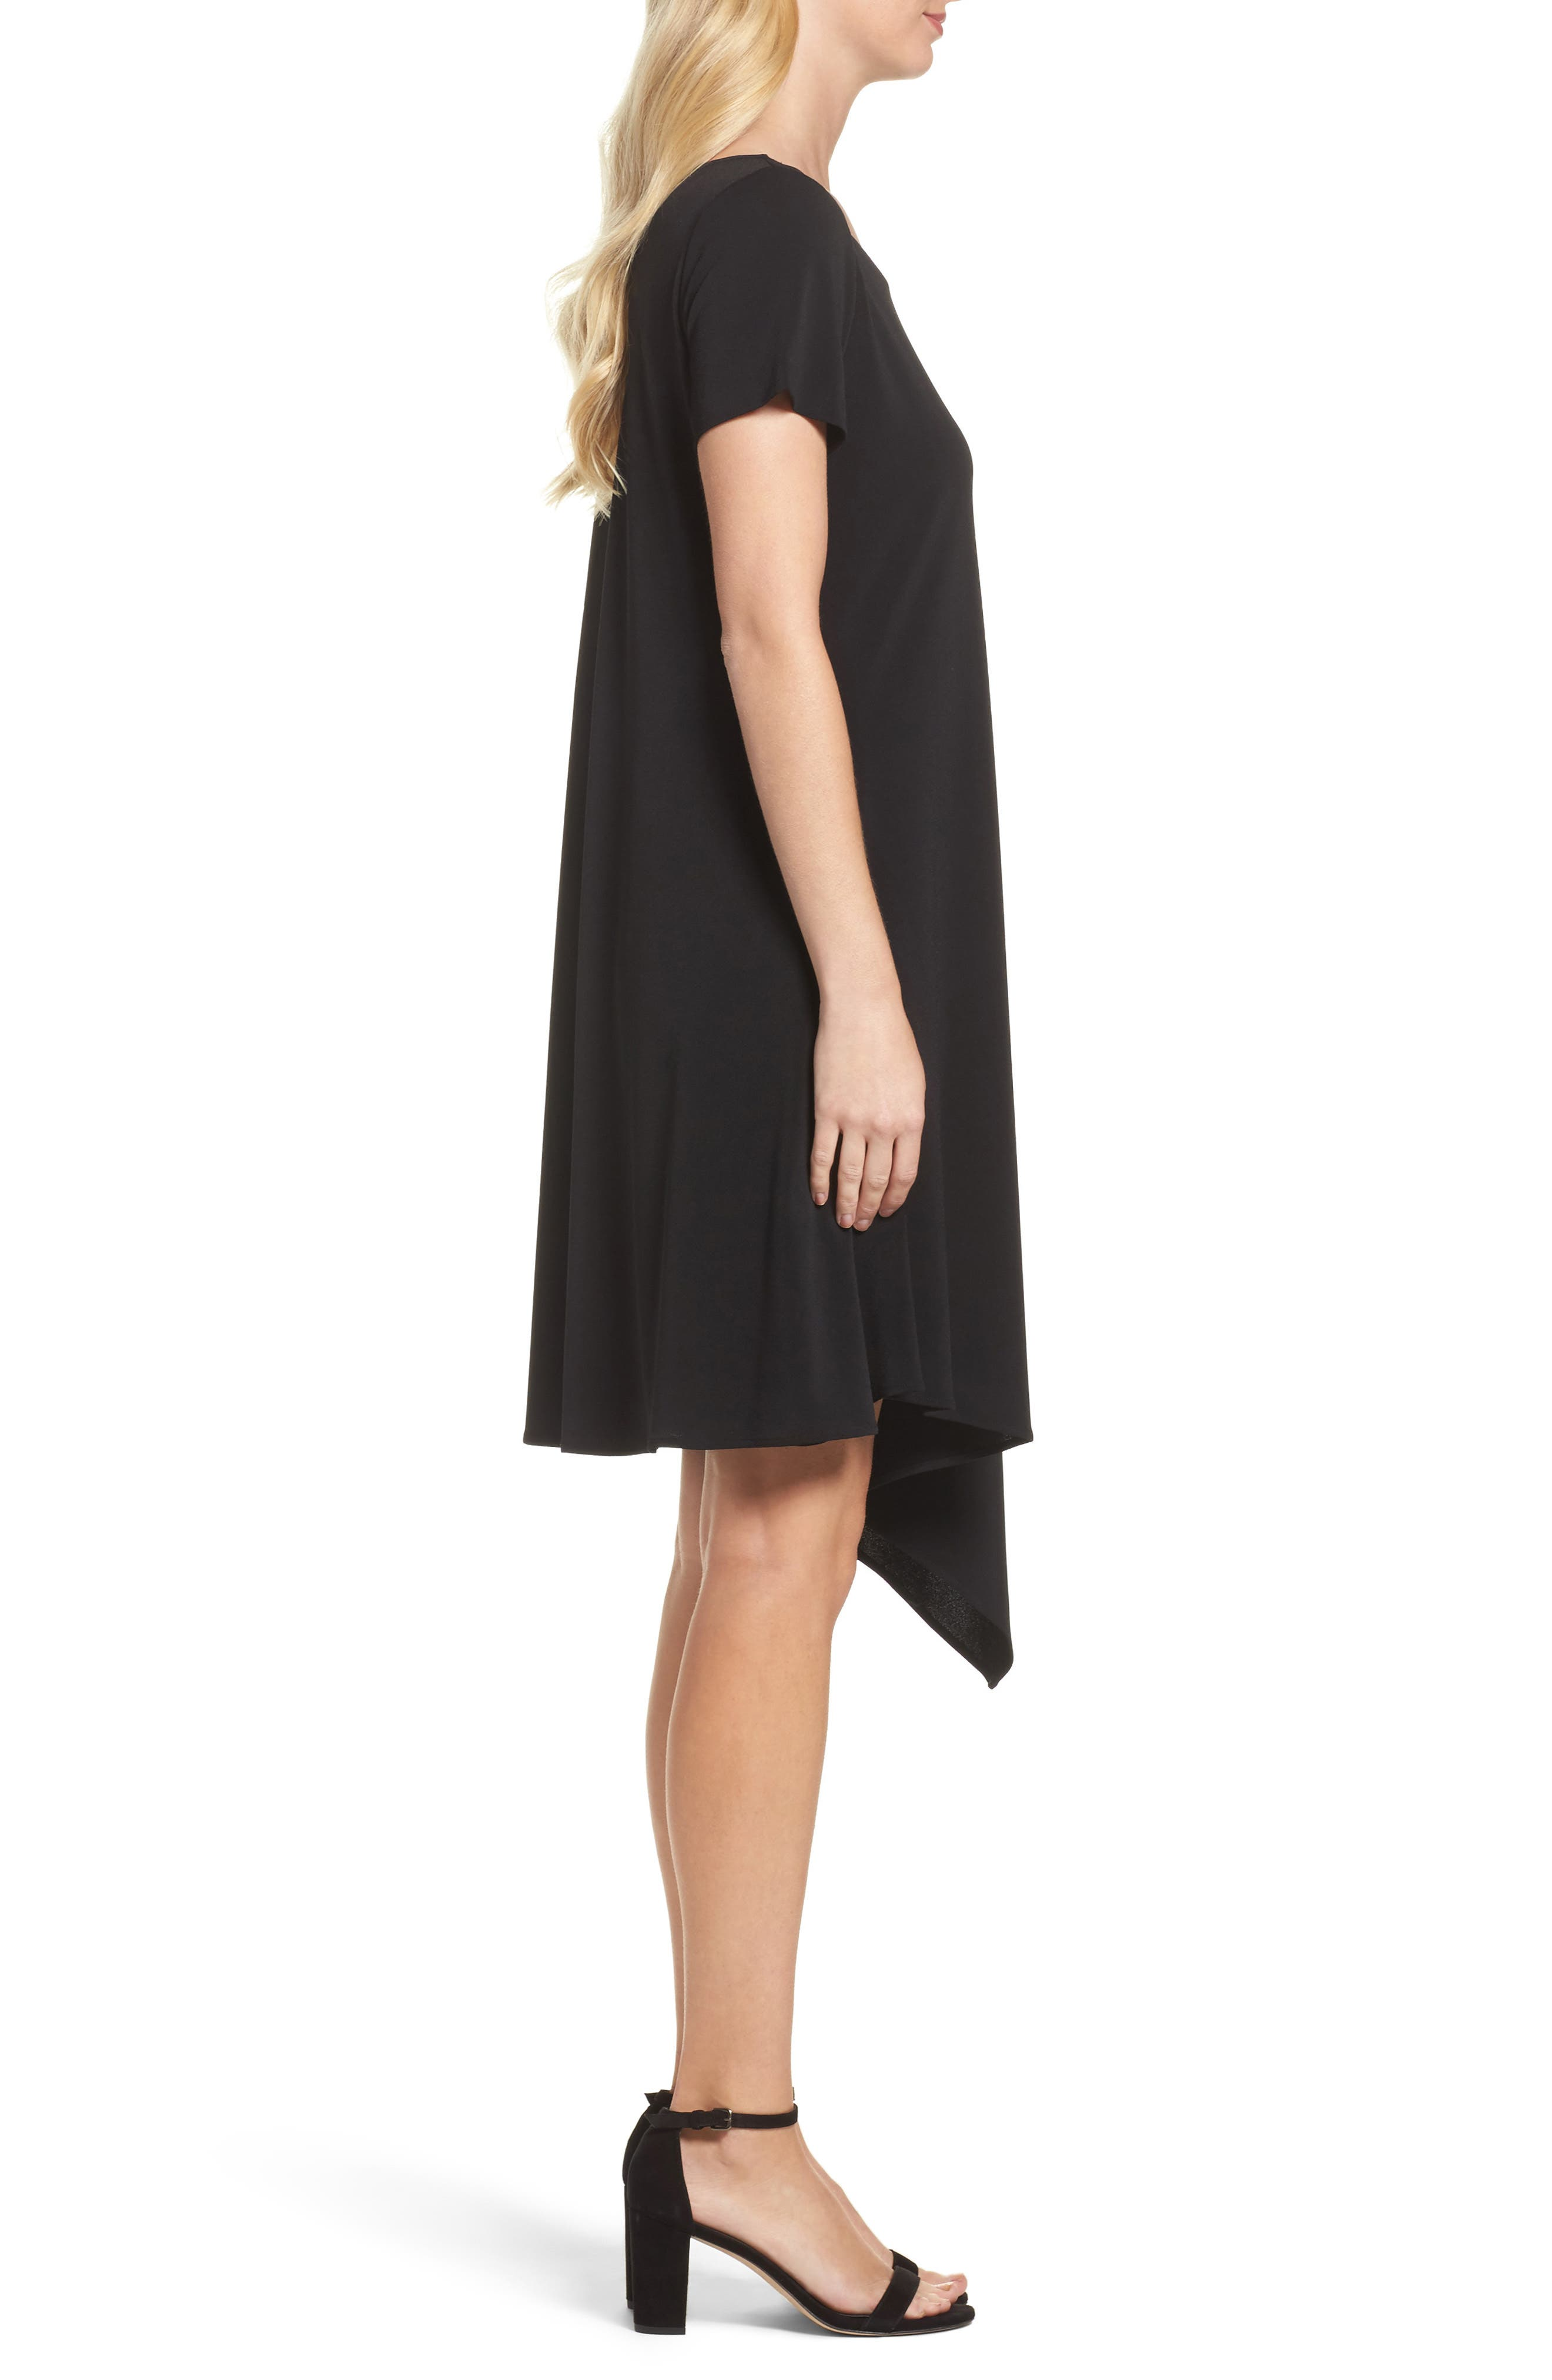 Darien Asymmetrical Dress,                             Alternate thumbnail 3, color,                             Black Crepe